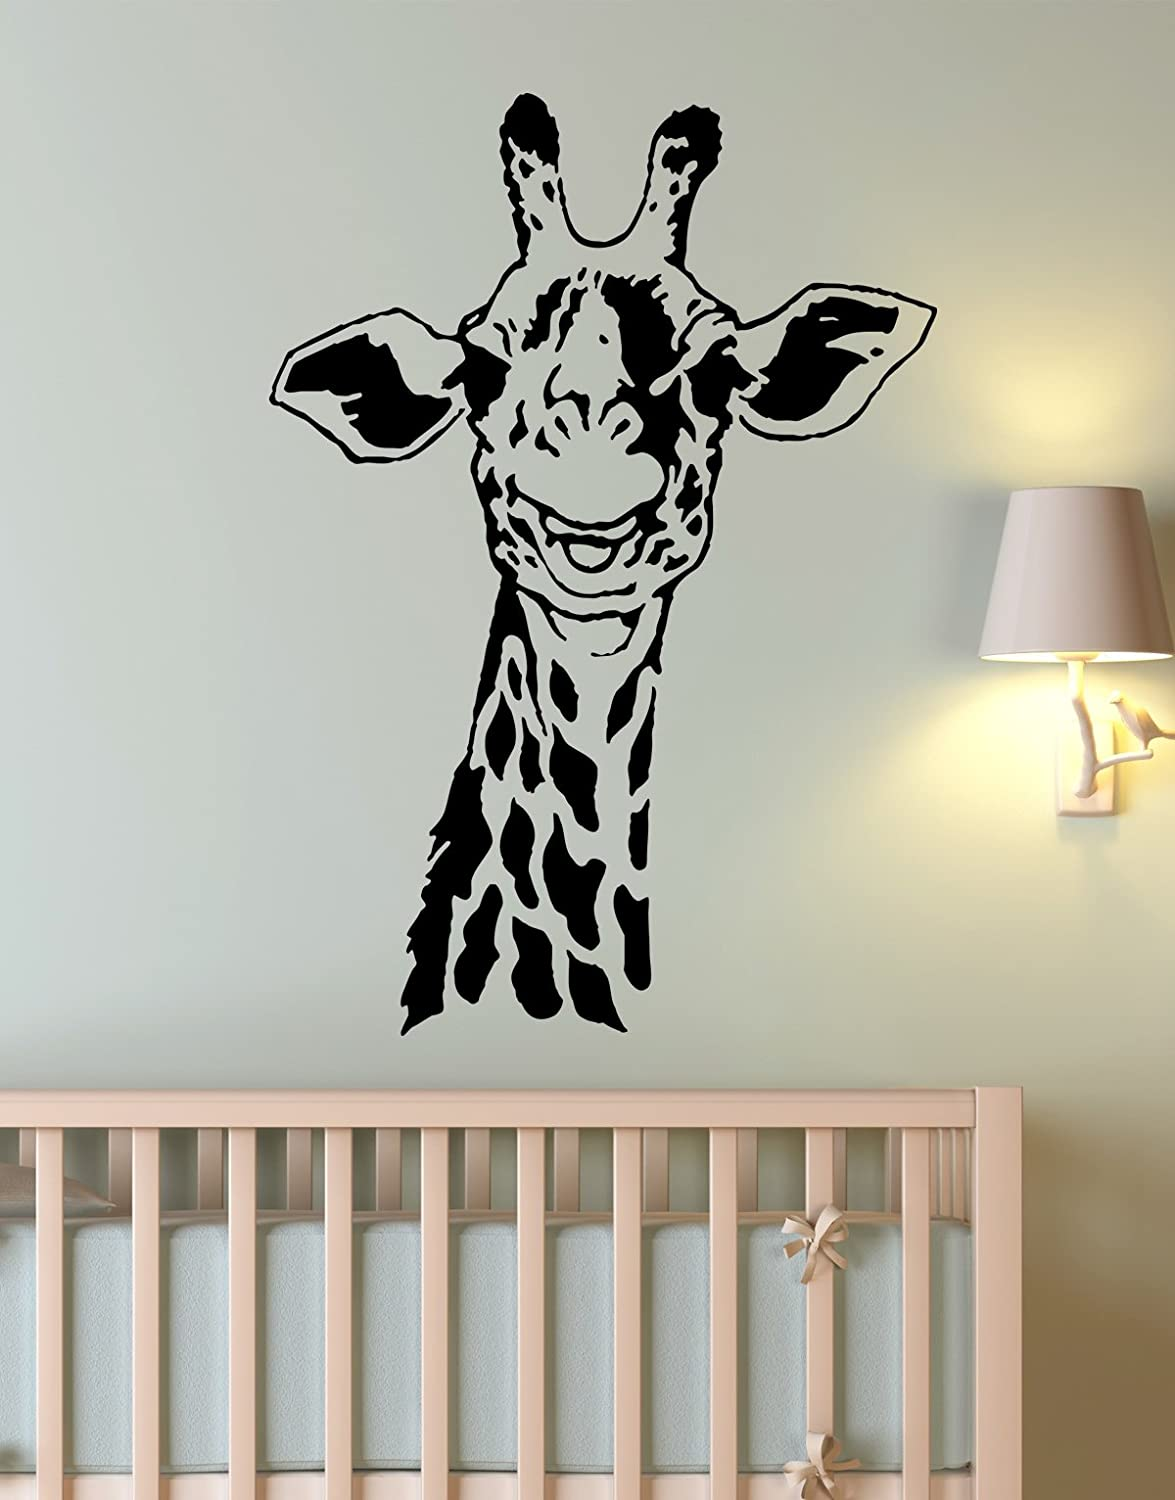 Amazoncom African Safari Giraffe Wall Decal Sticker By - How do you put up vinyl wall decals